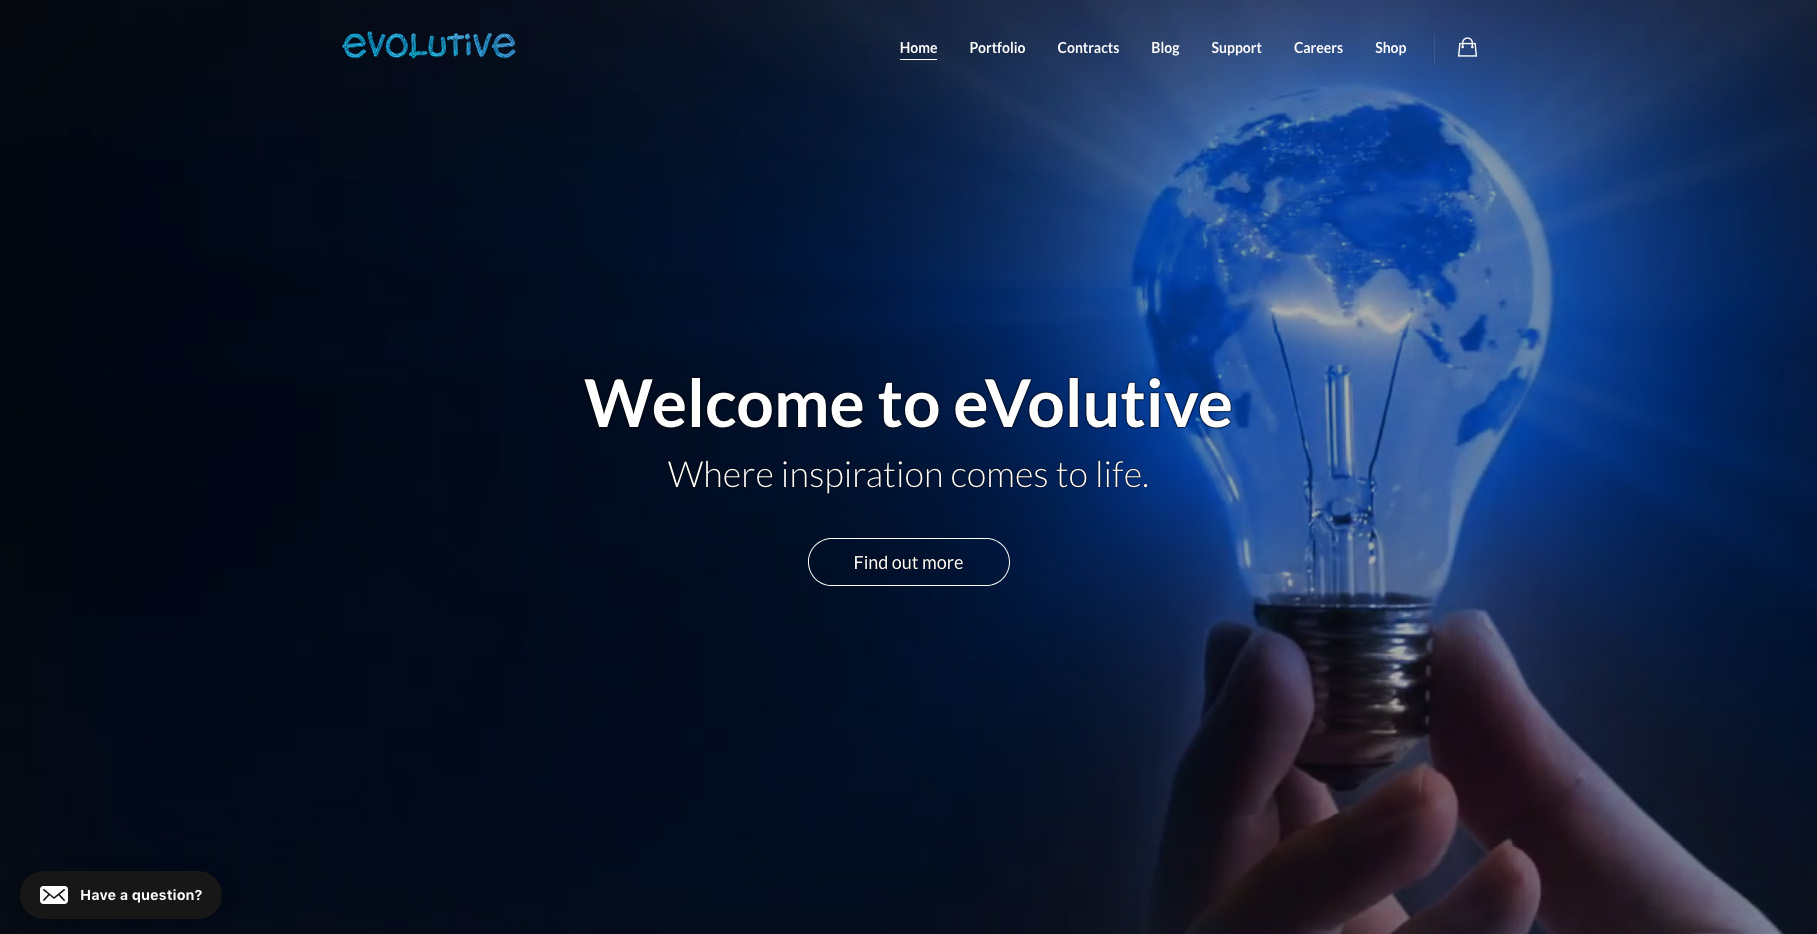 Renewed website for eVolutive - Apps and websites development - Contracts